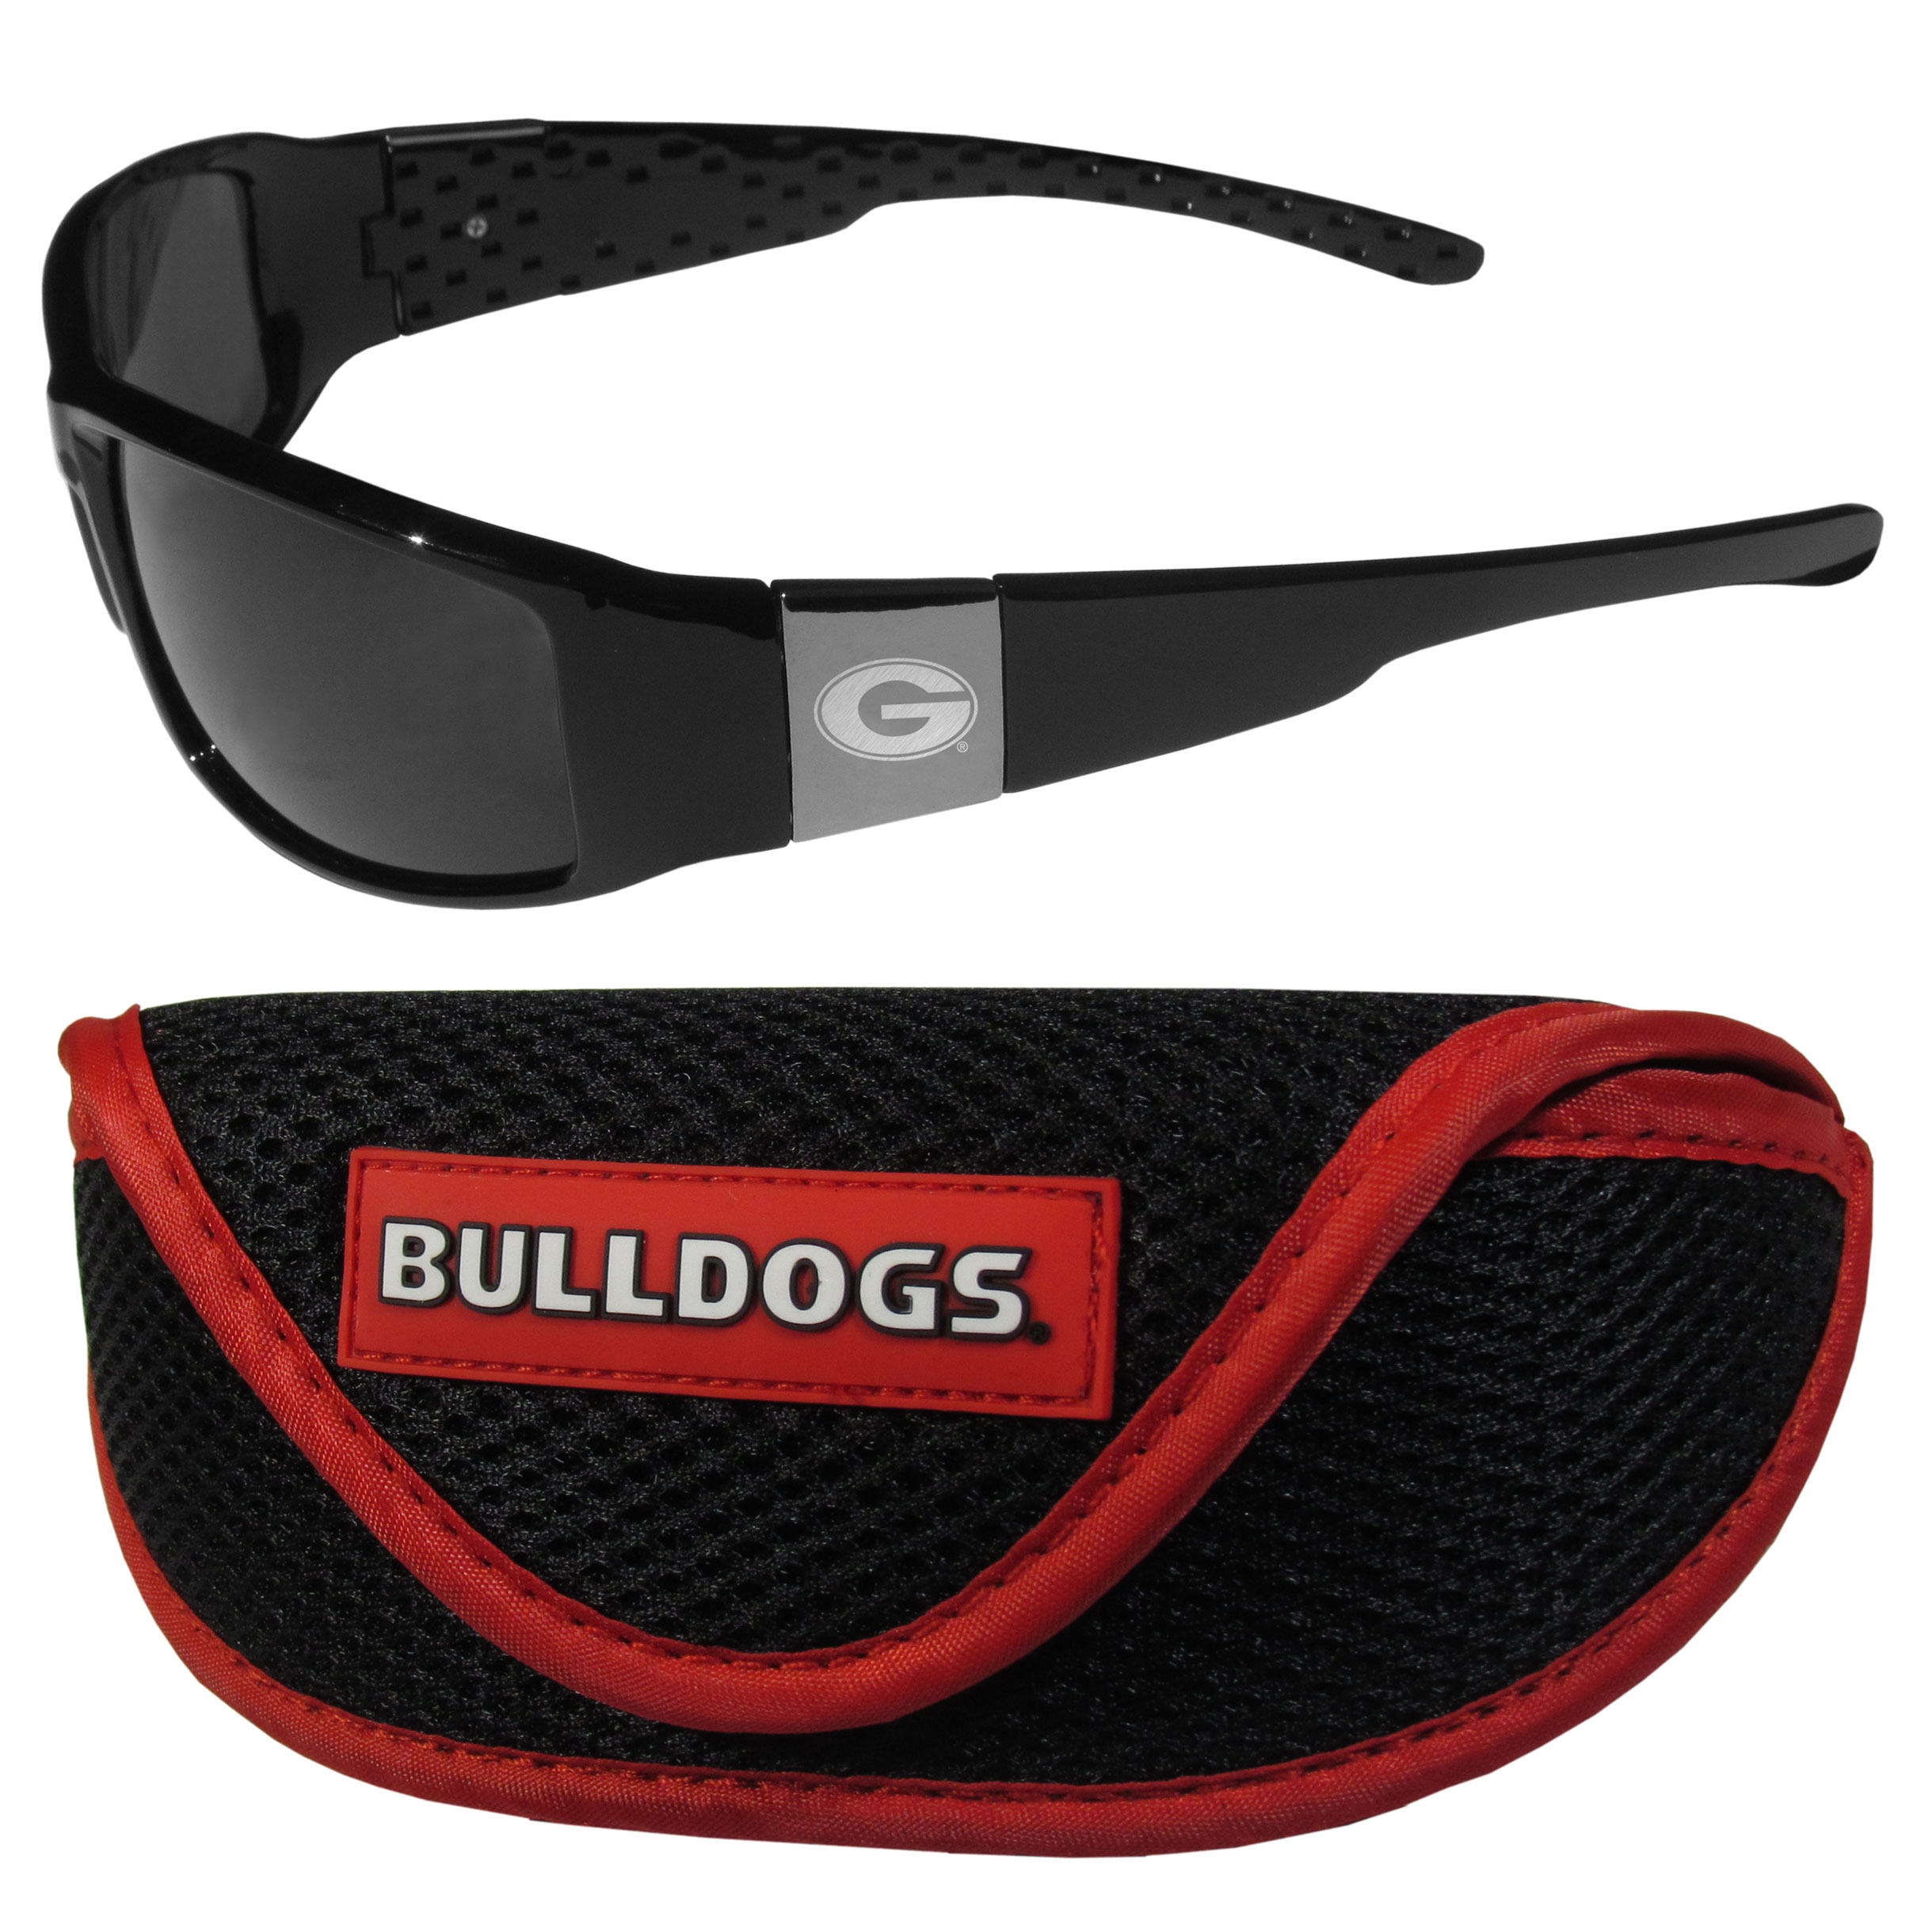 Georgia Bulldogs Chrome Wrap Sunglasses and Sport Carrying Case - These designer inspired frames have a sleek look in all black with high-polish chrome Georgia Bulldogs shields on each arm with an etched logo. The shades are perfect any outdoor activity like; golfing, driving, hiking, fishing or cheering on the team at a tailgating event or an at home game day BBQ with a lens rating of 100% UVA/UVB for maximum UV protection. The high-quality frames are as durable as they are fashionable and with their classic look they are perfect fan accessory that can be worn everyday for every occasion. The shades come with a zippered hard shell case to keep your sunglasses safe.